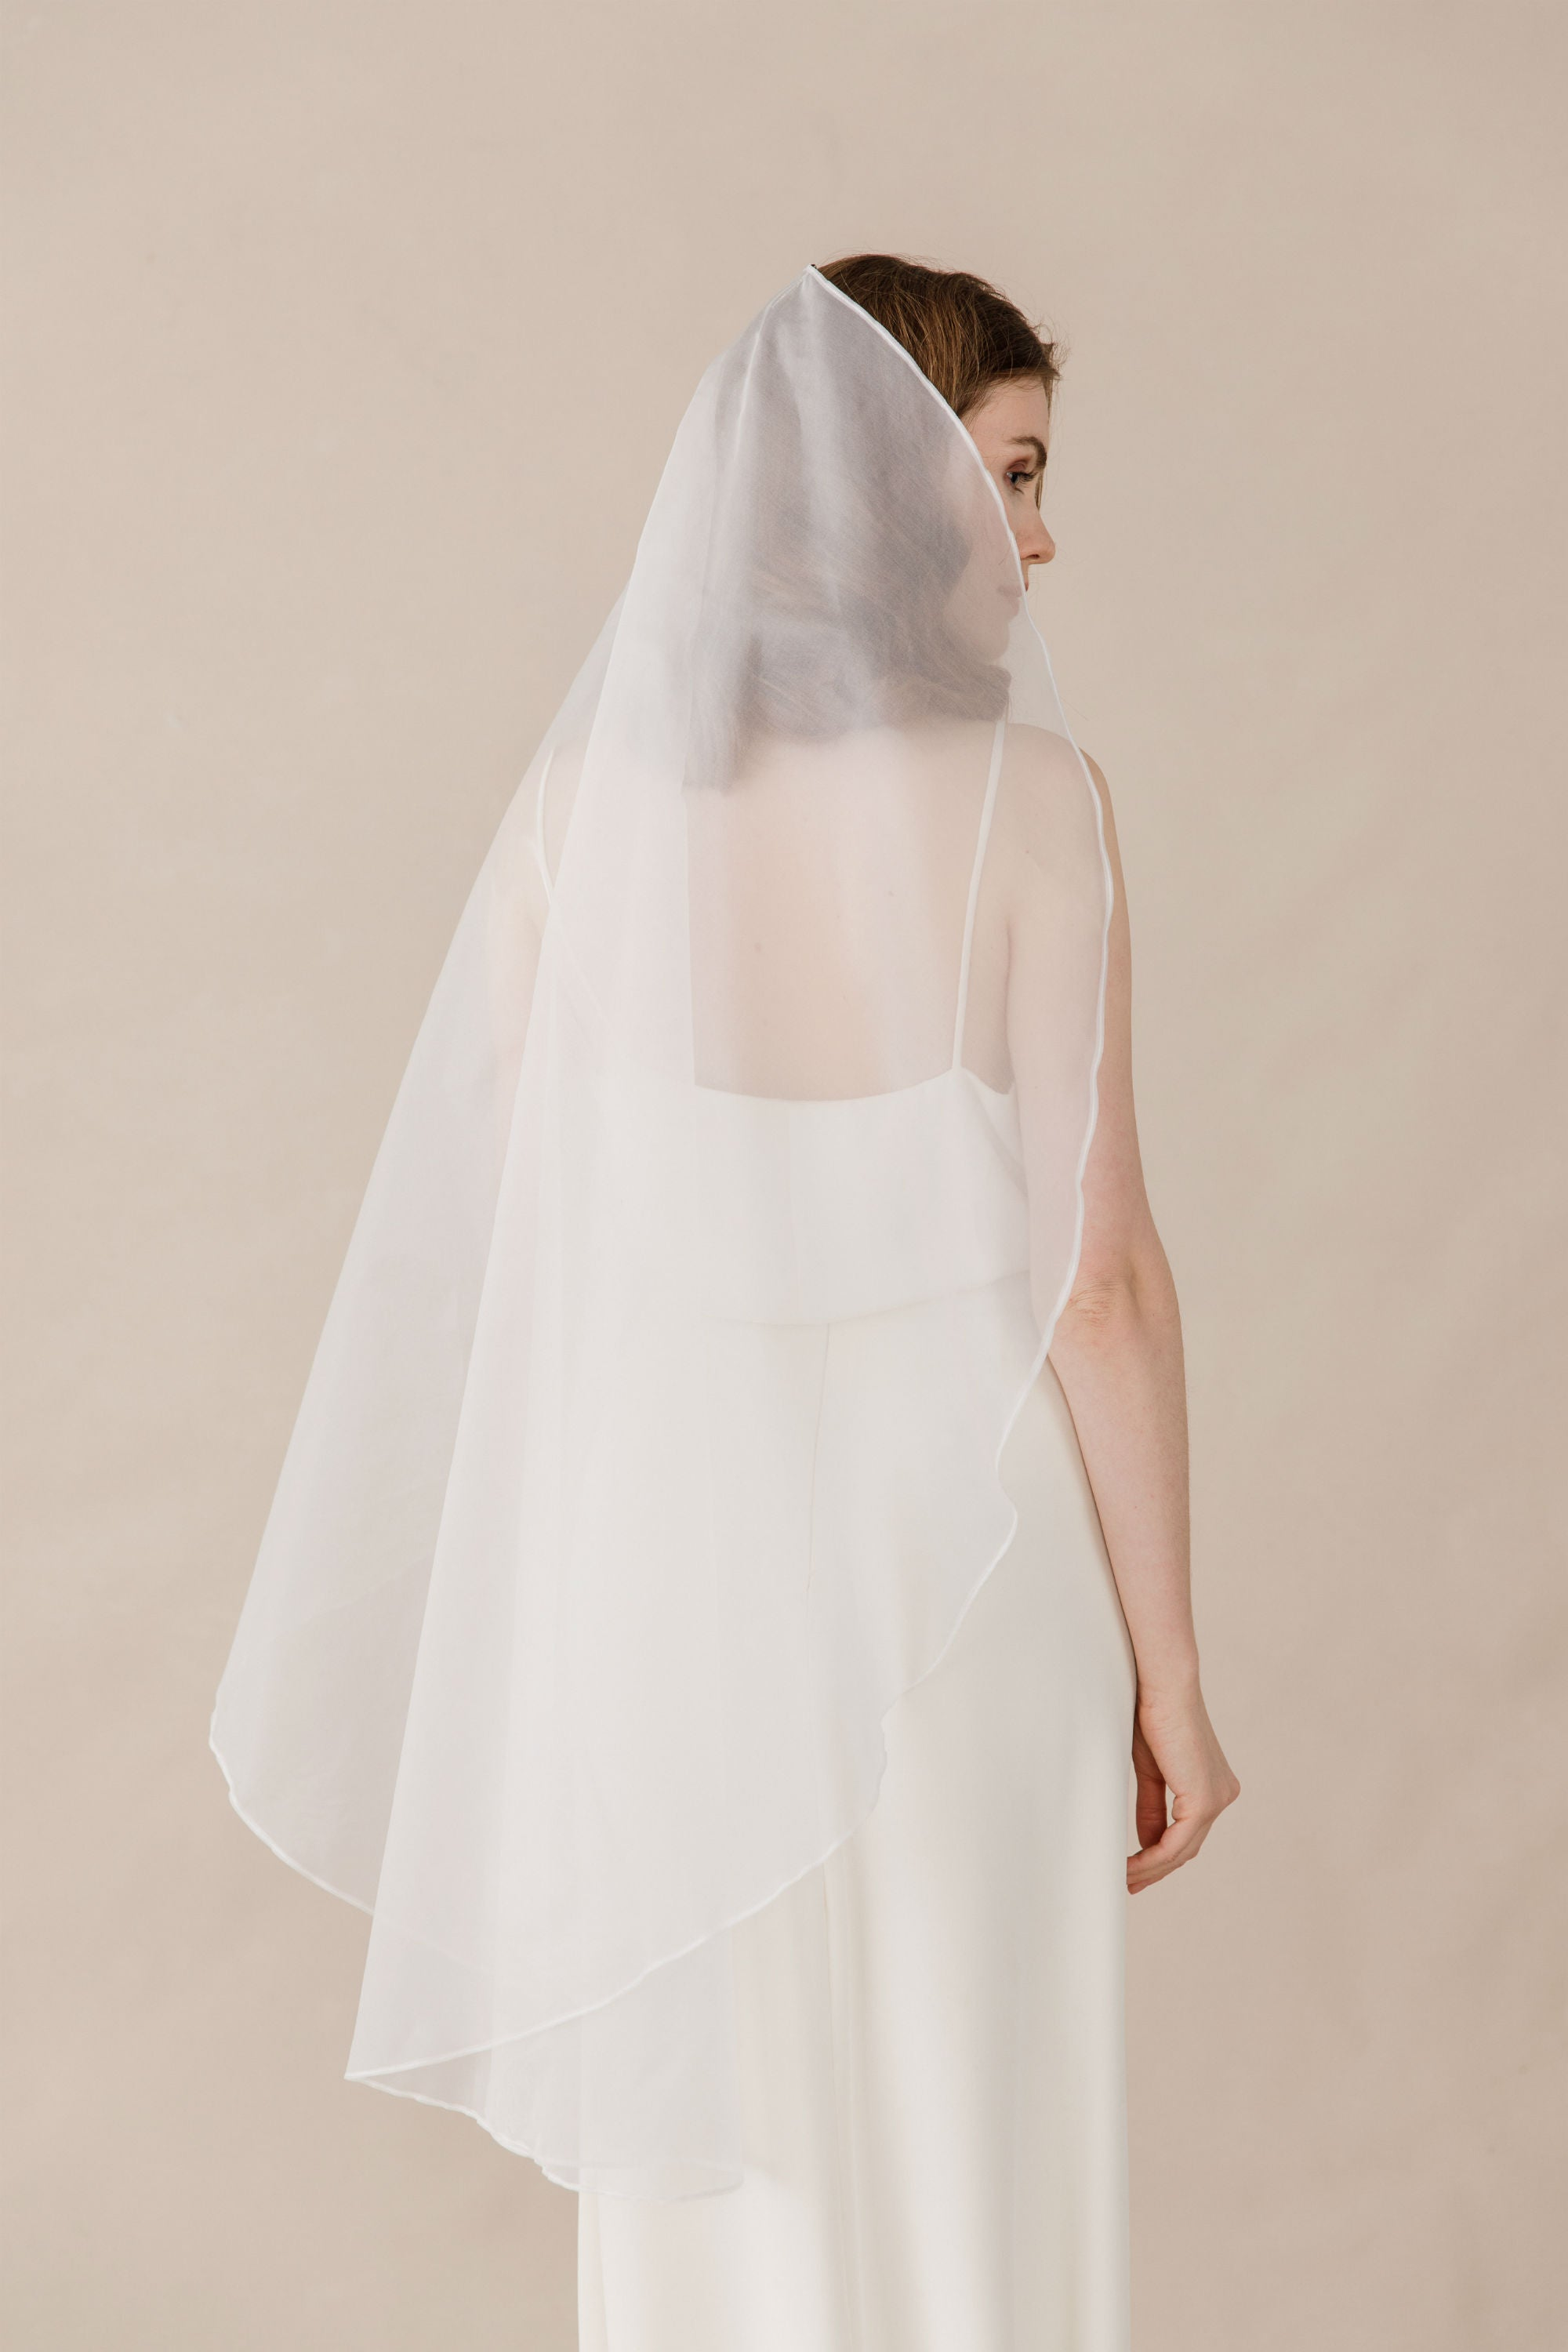 silk organza wedding veil